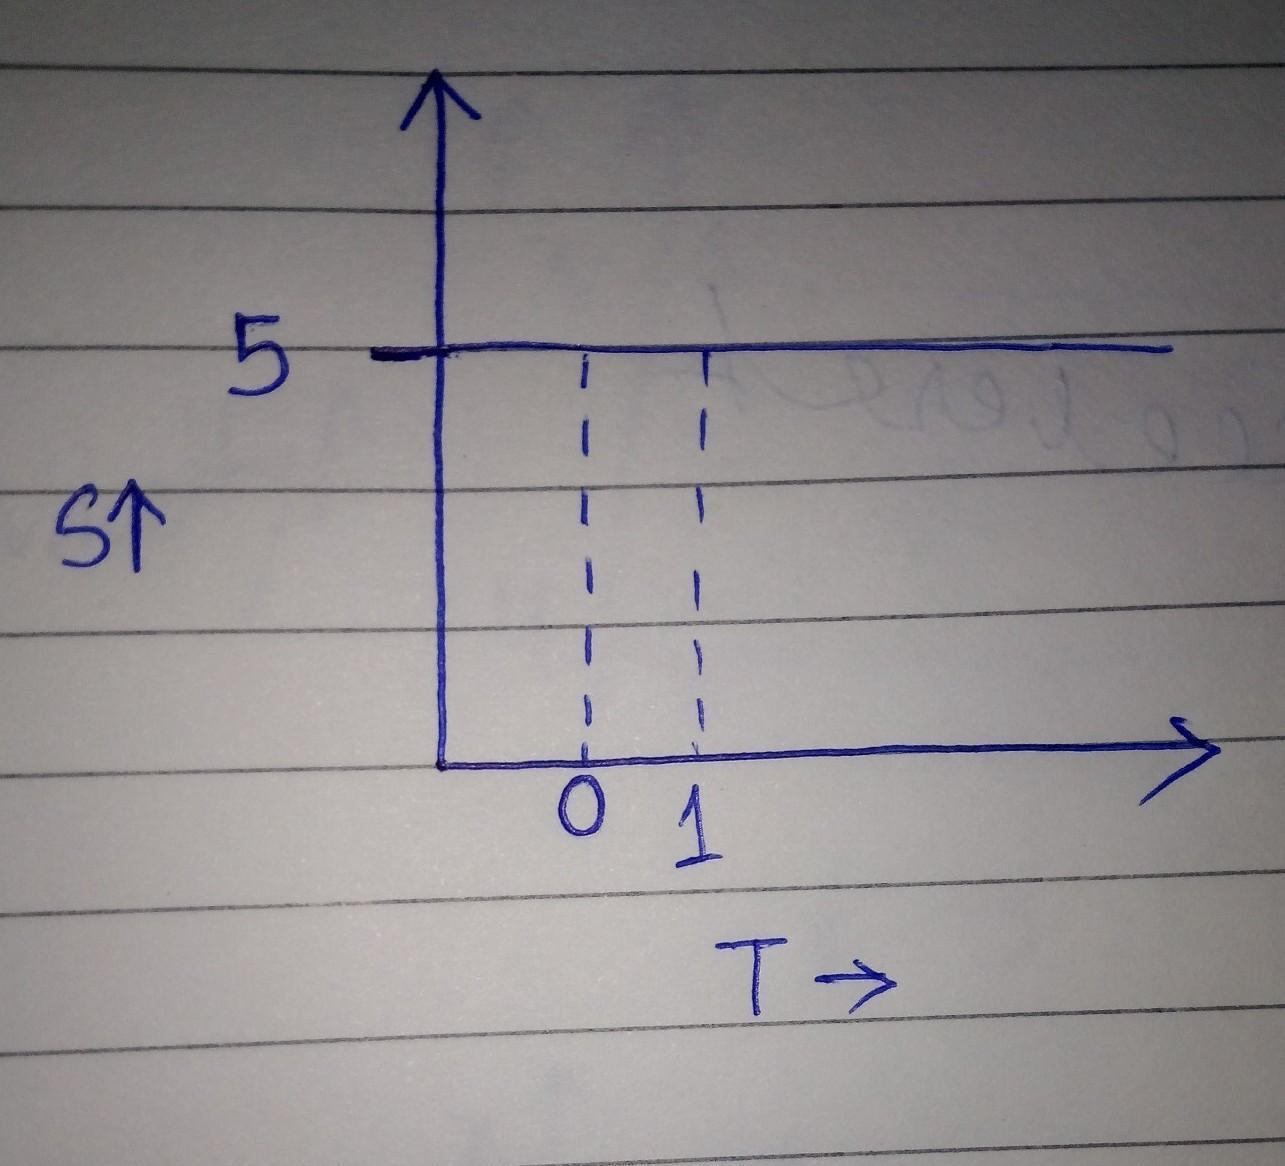 Draw The Velocity Time Graph And Position Time Graph For A